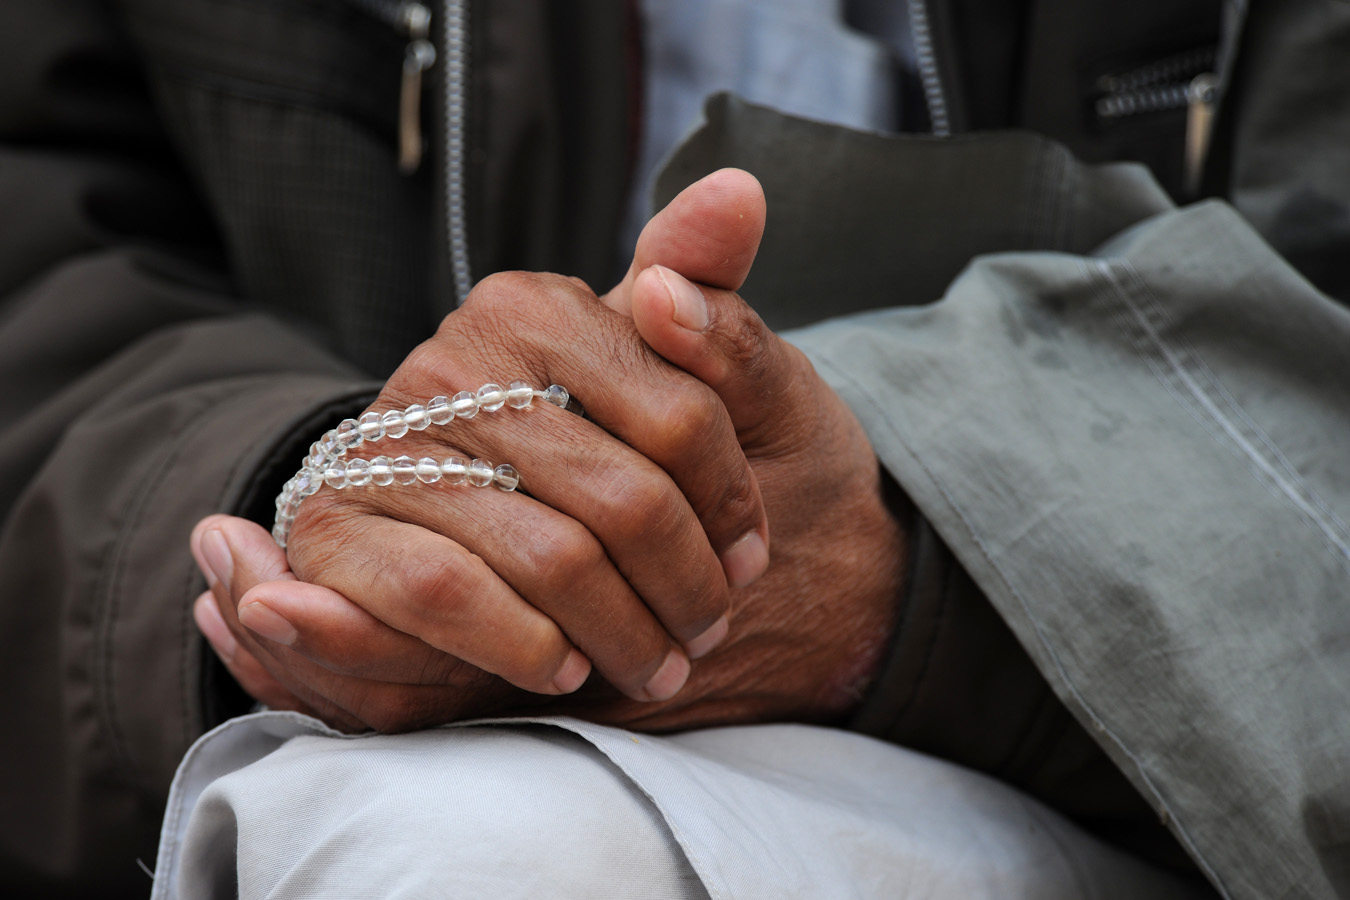 Abdul Satar Rahimi, the Deputy Director for the Farah Provincial Council, holds his prayer beads during a ribbon cutting ceremony March 8, 2010, Farah, Afghanistan.